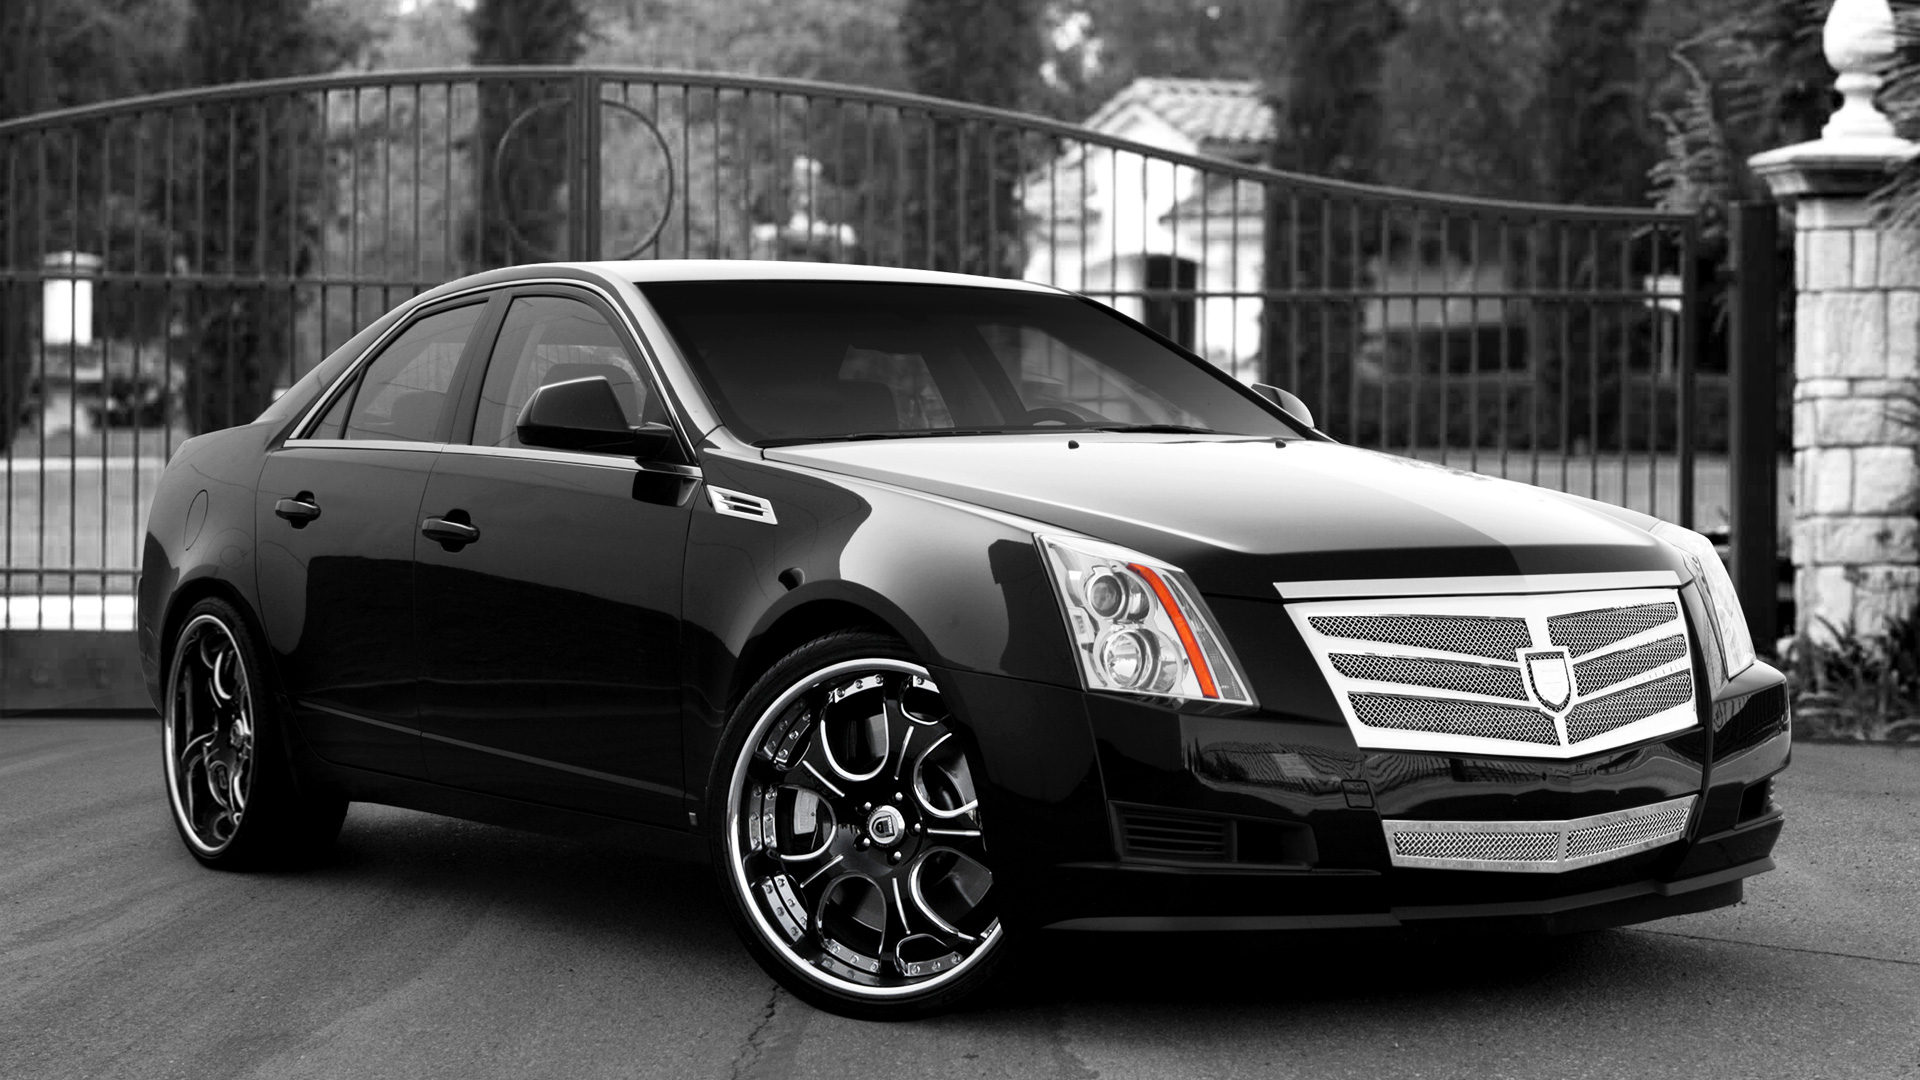 Download Muscle Cars Hd Wallpapers Cadillac Cts Wallpaper High Definition 1542 Wallpaper